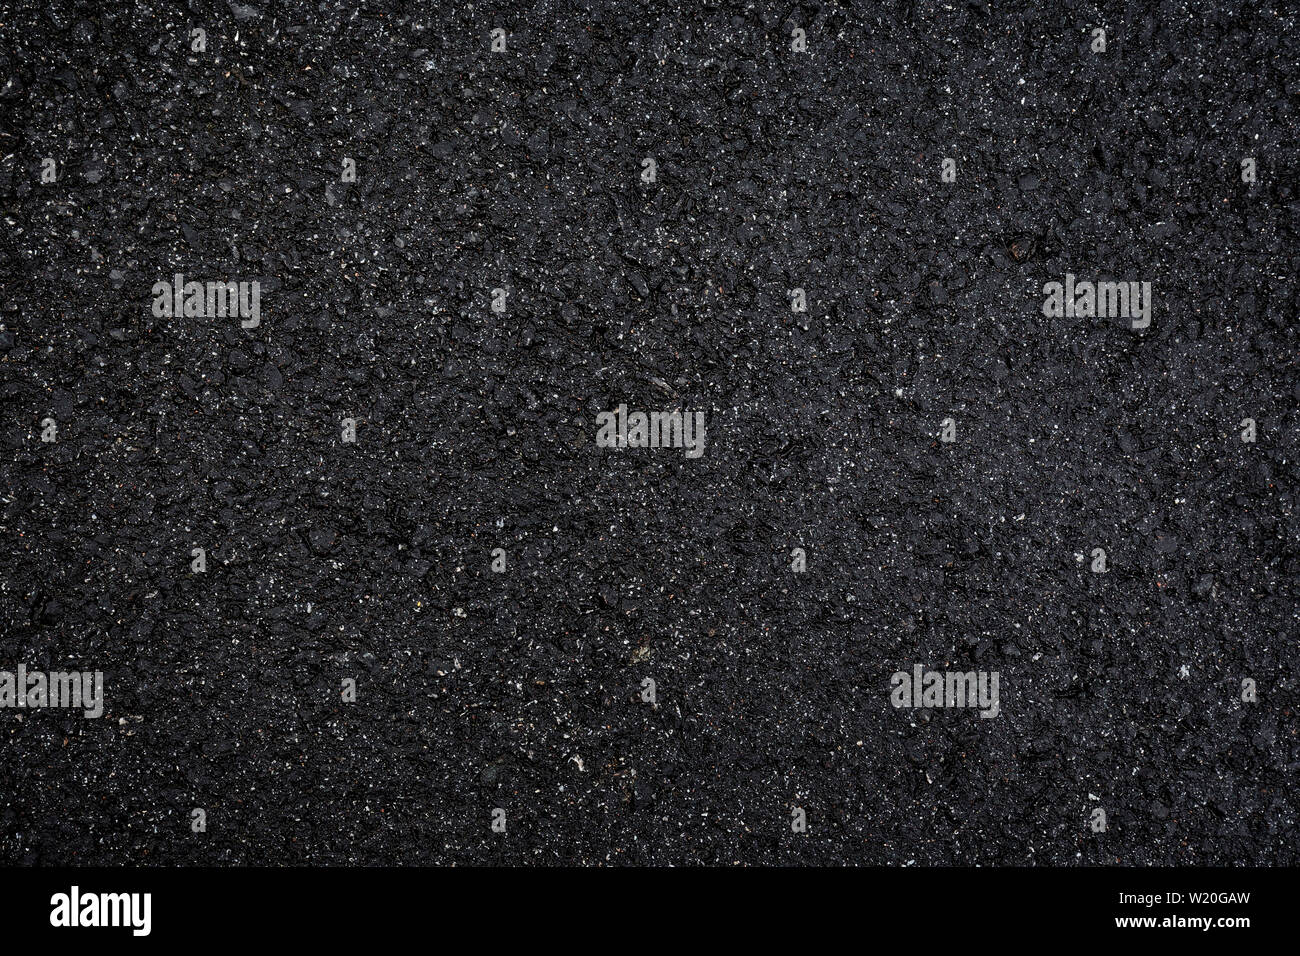 Close-up of wet, black asphalt, viewed from above. High resolution dark full frame textured background. Stock Photo